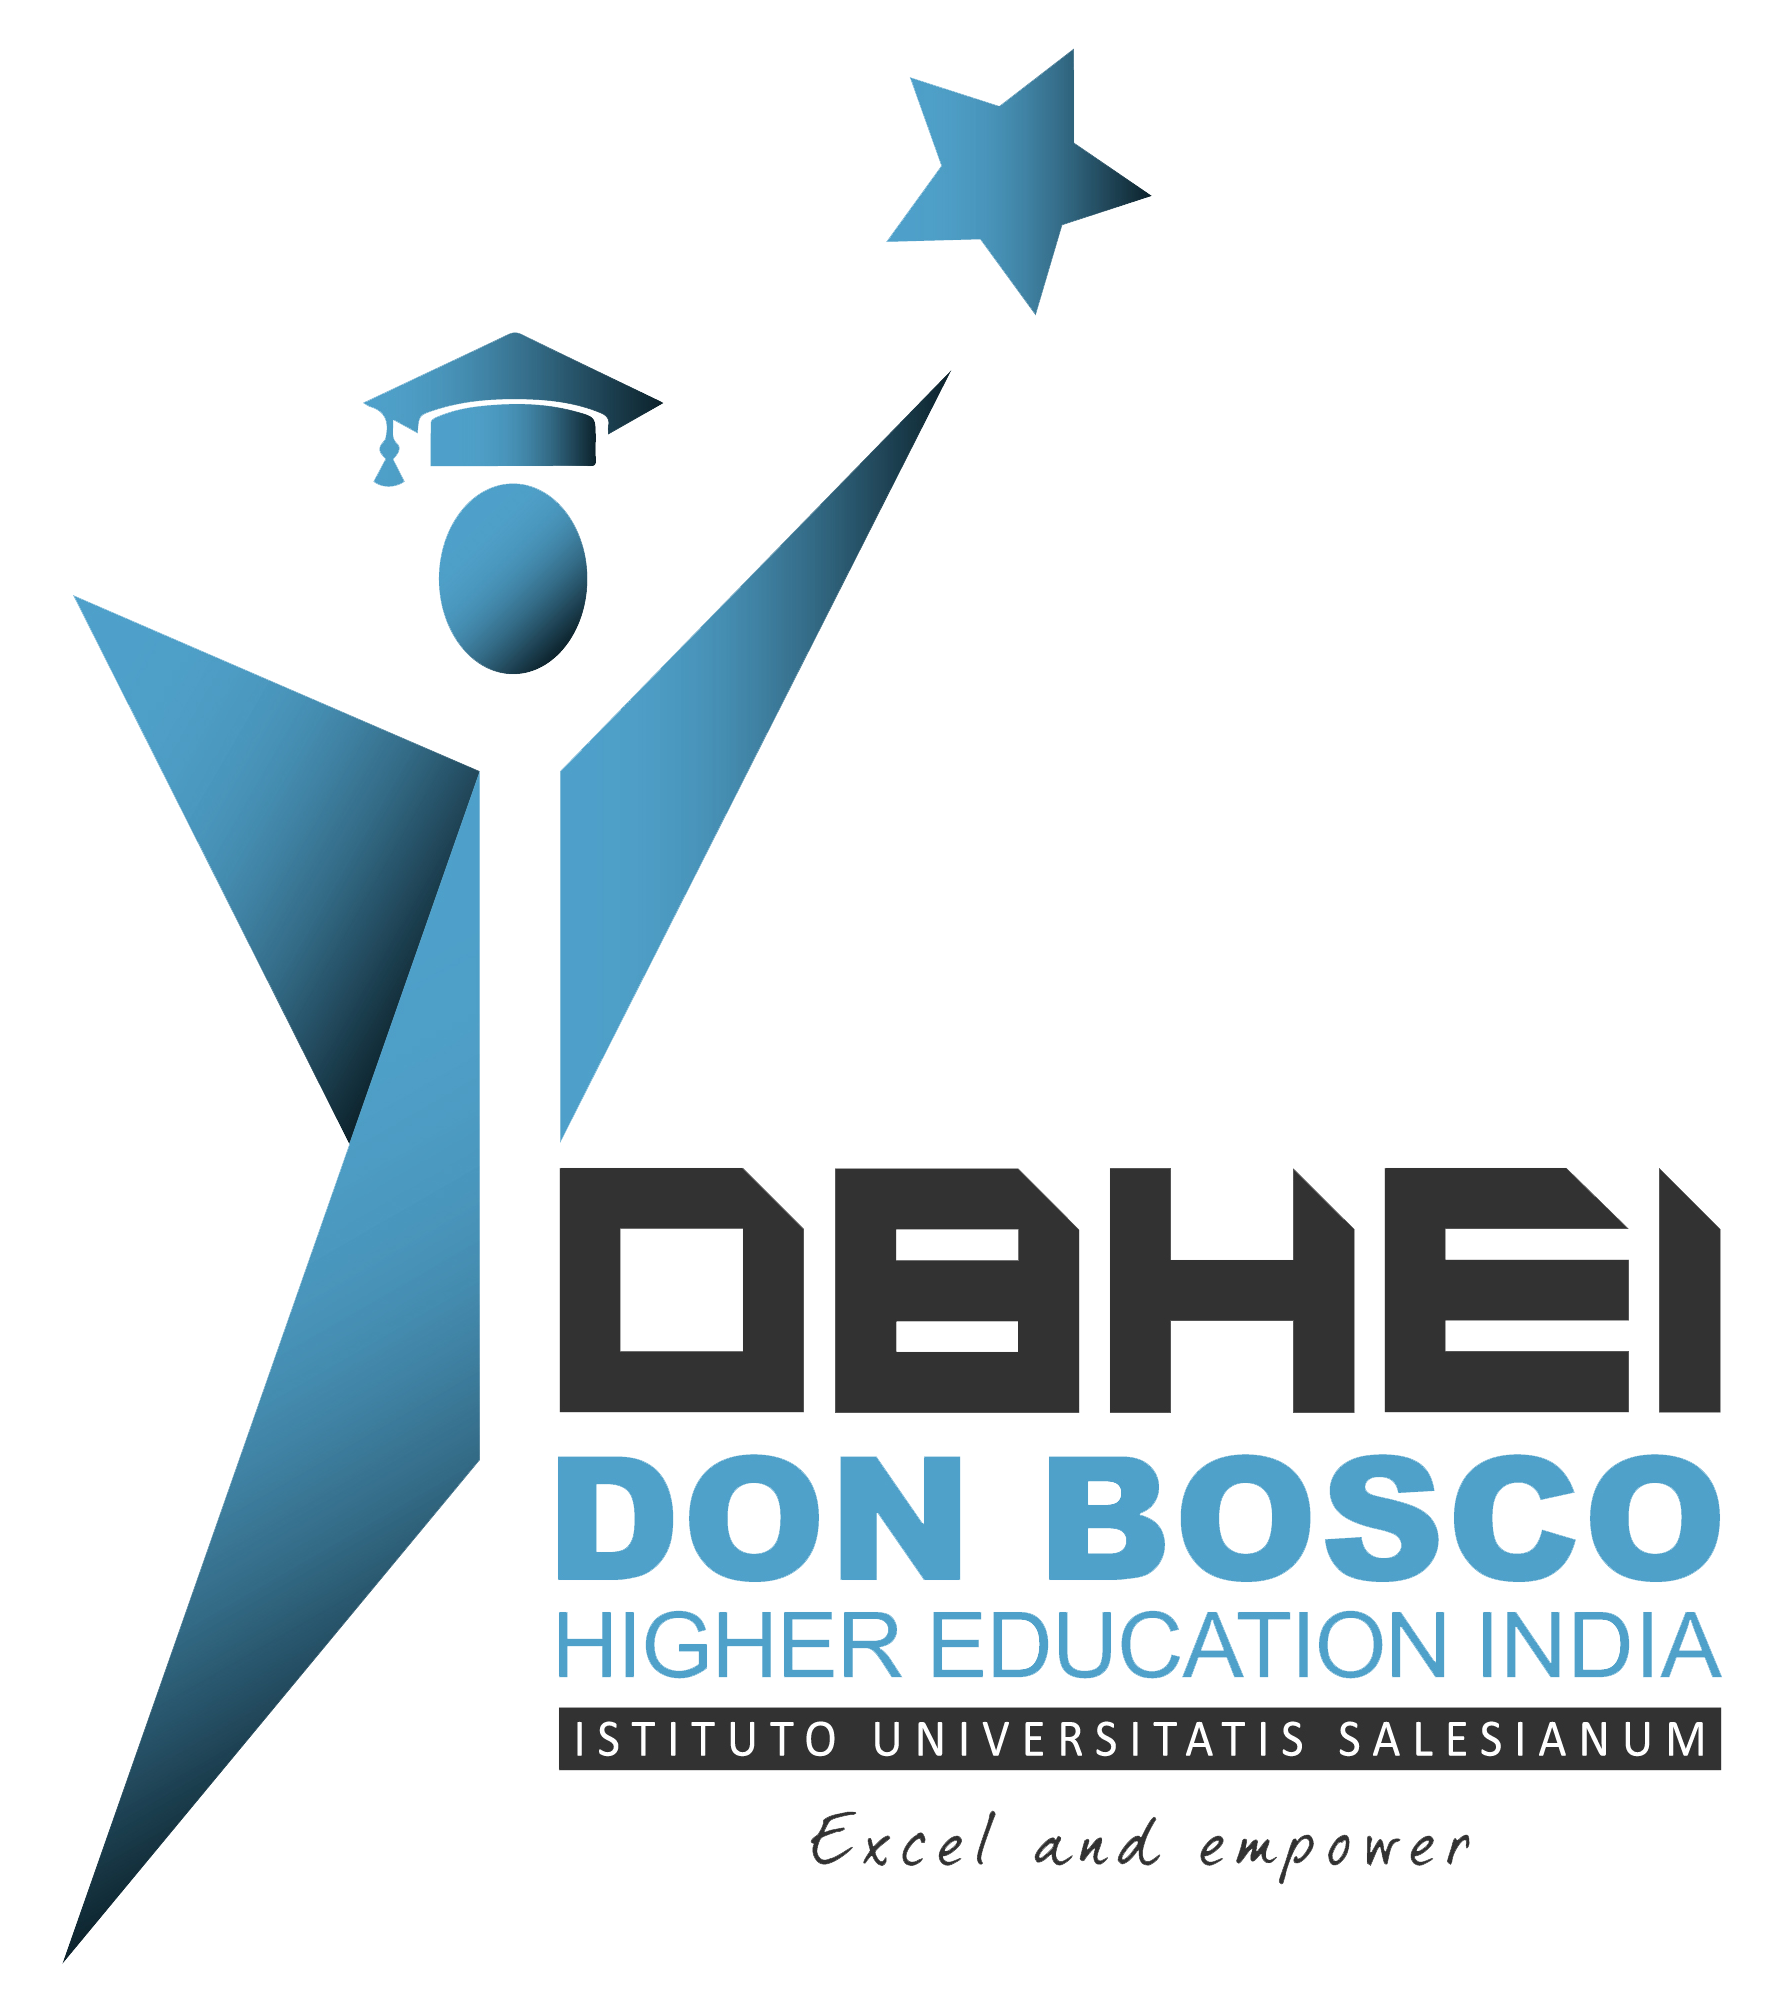 Don Bosco Higher Education India (DBHEI)